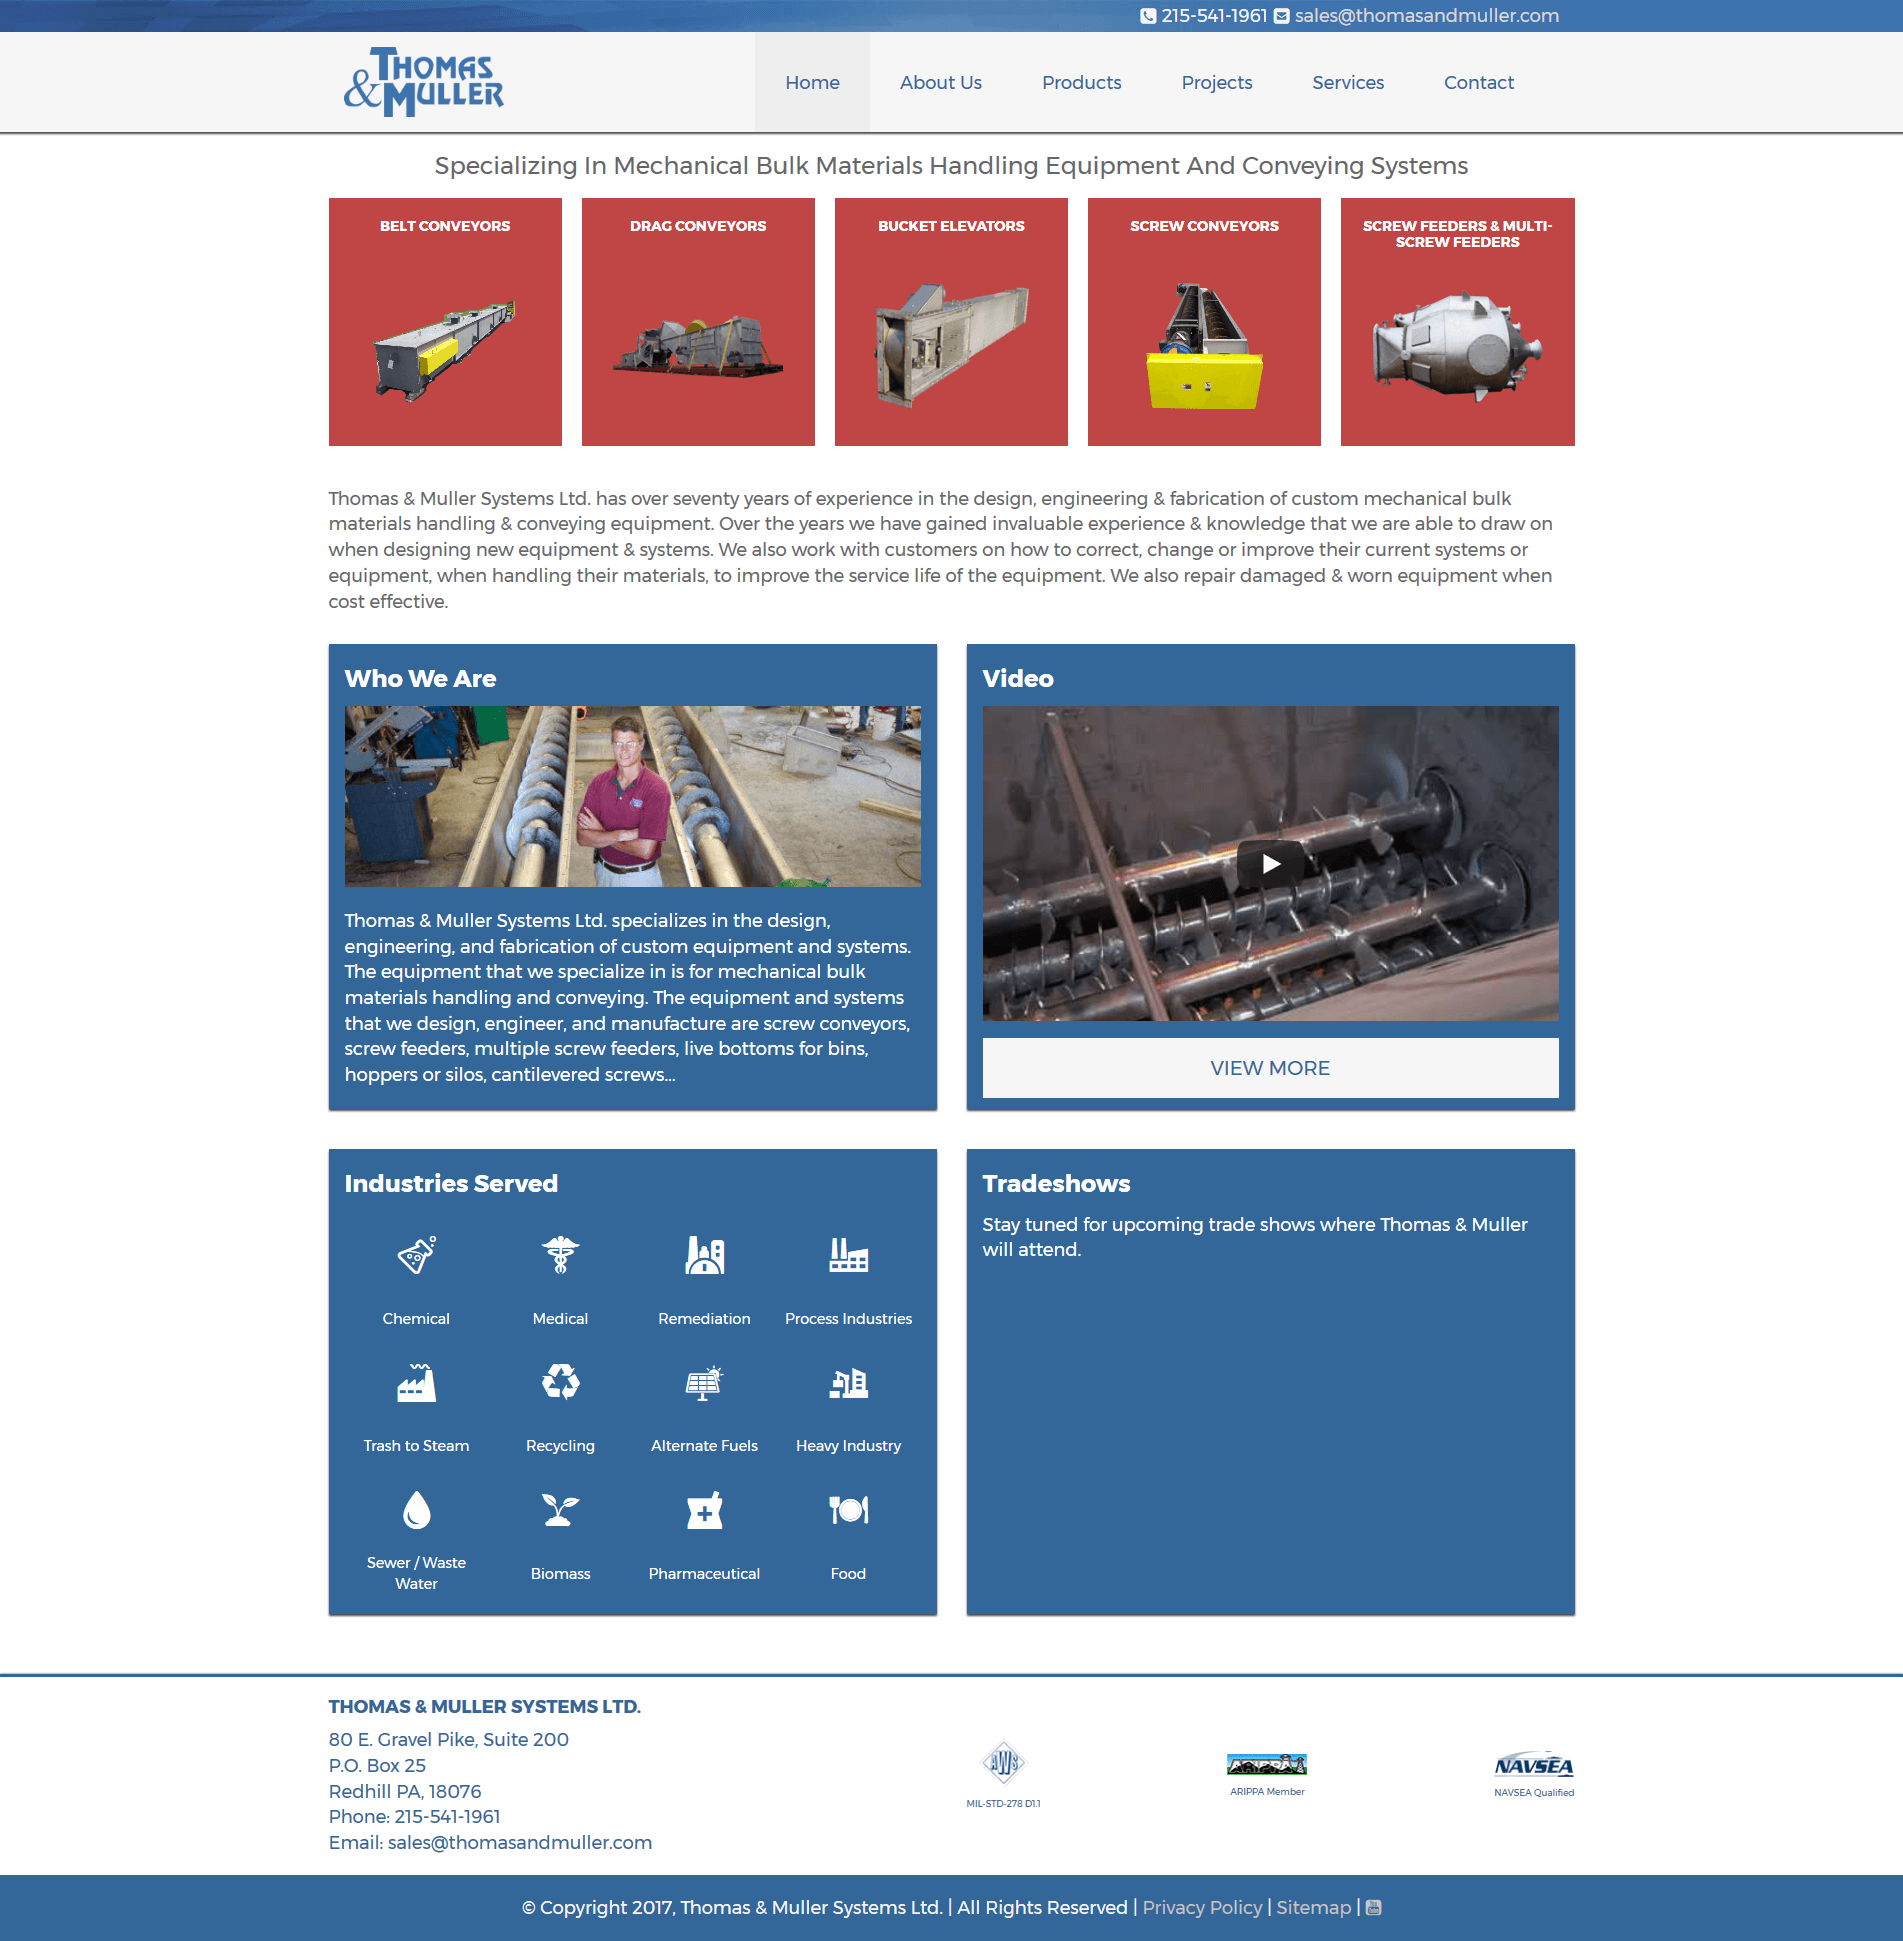 Thomas & Muller Systems Website Screenshot